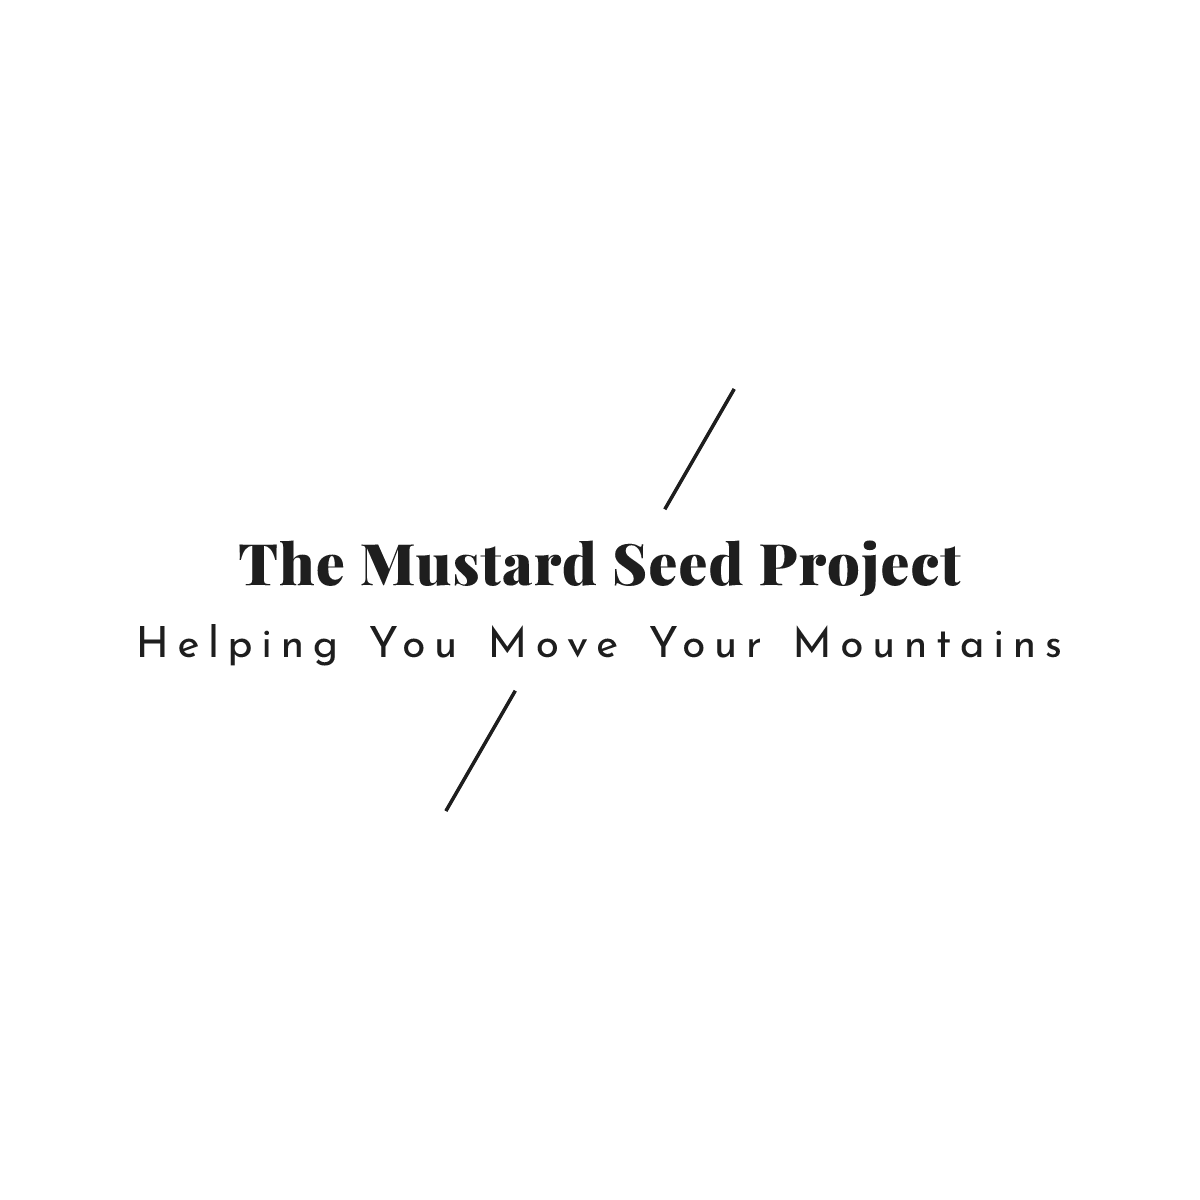 The Mustard Seed Project